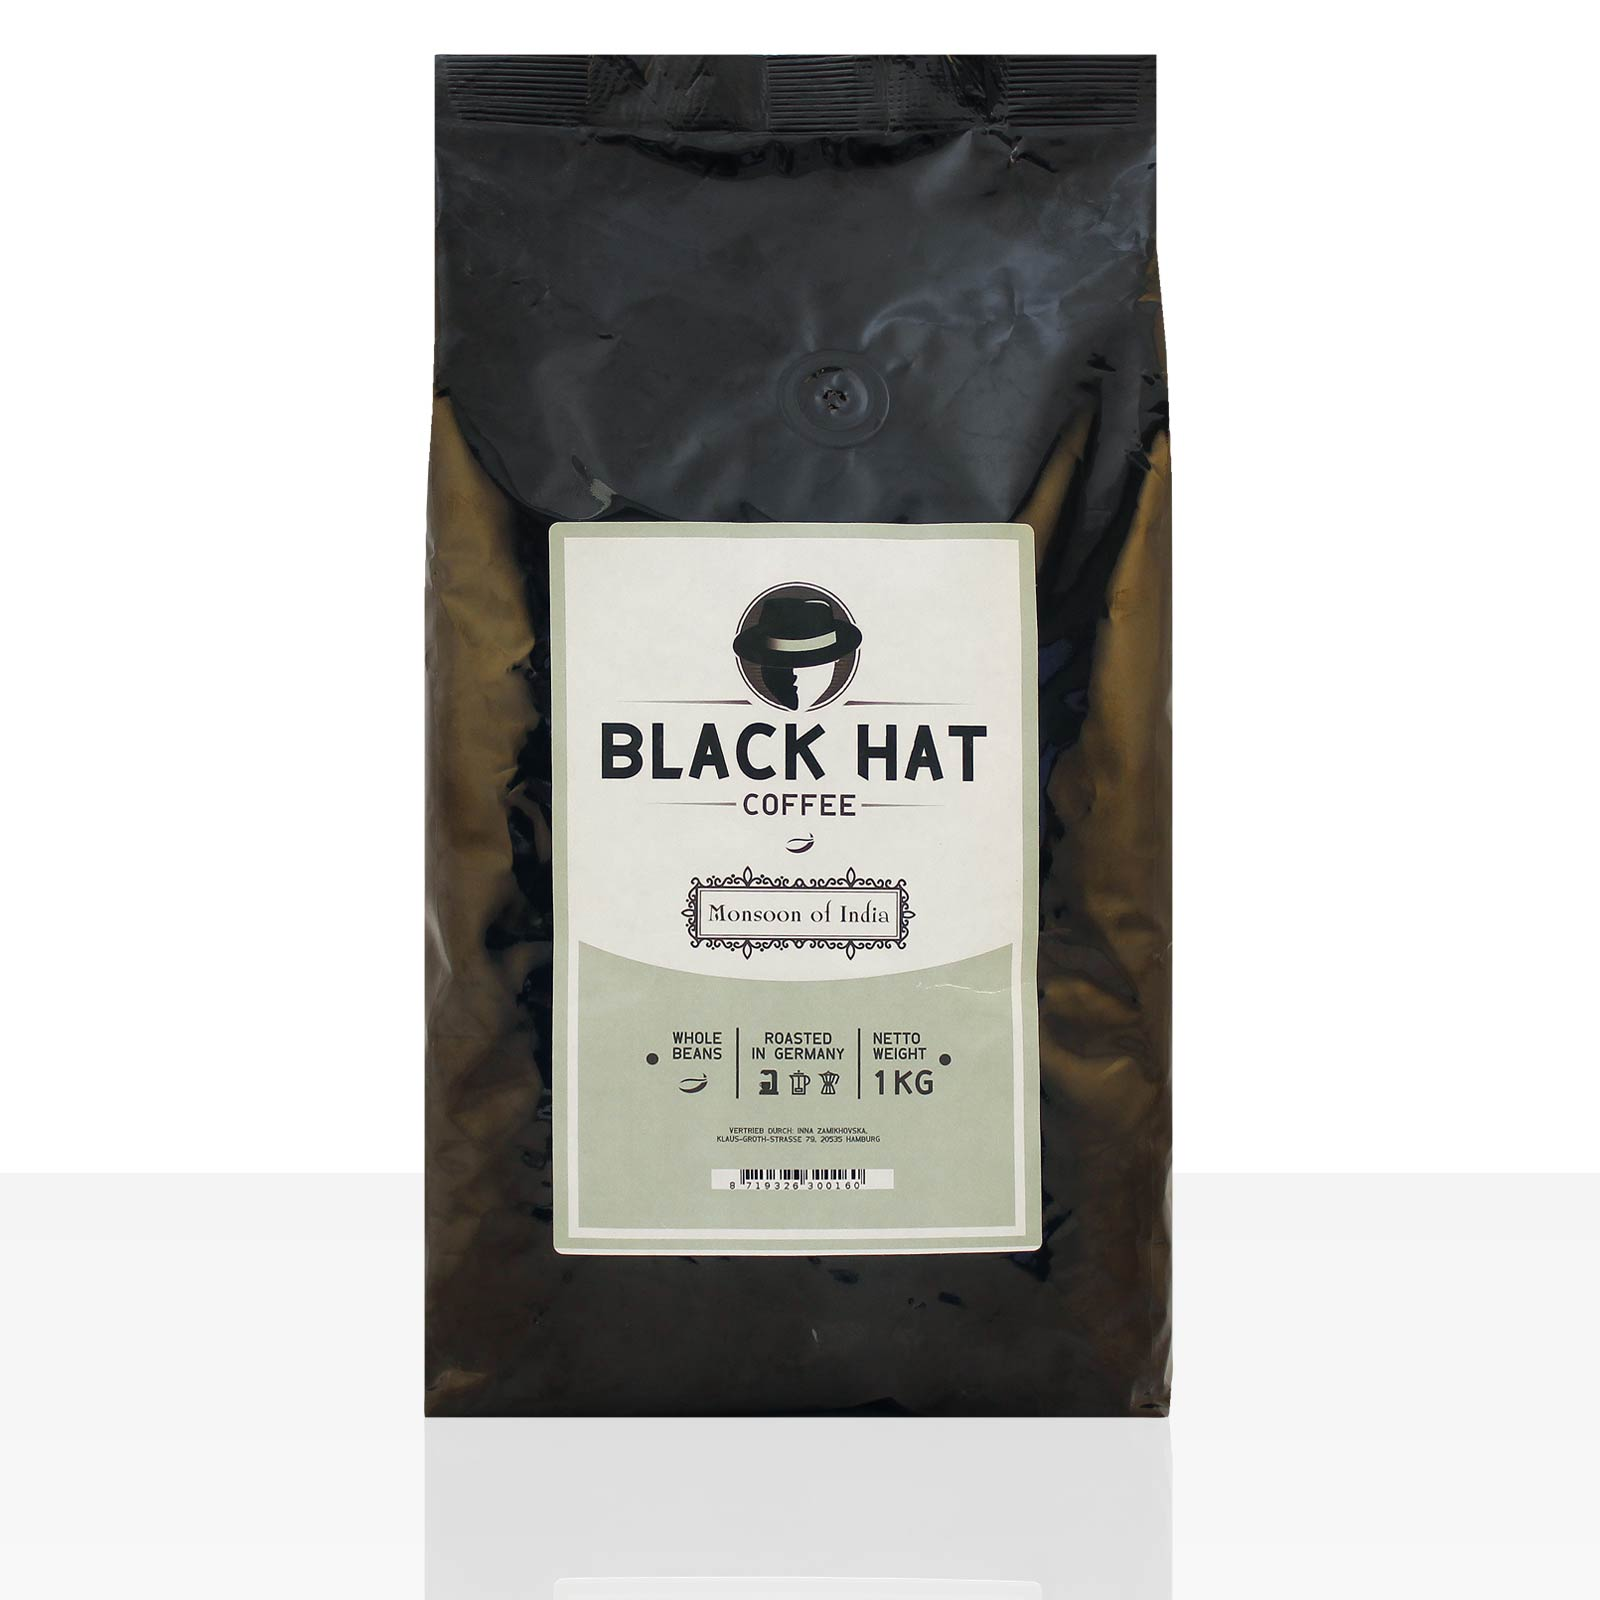 Black Hat Coffee Monsoon of India - 5 x 1kg ganze Kaffeebohnen 100% Arabica